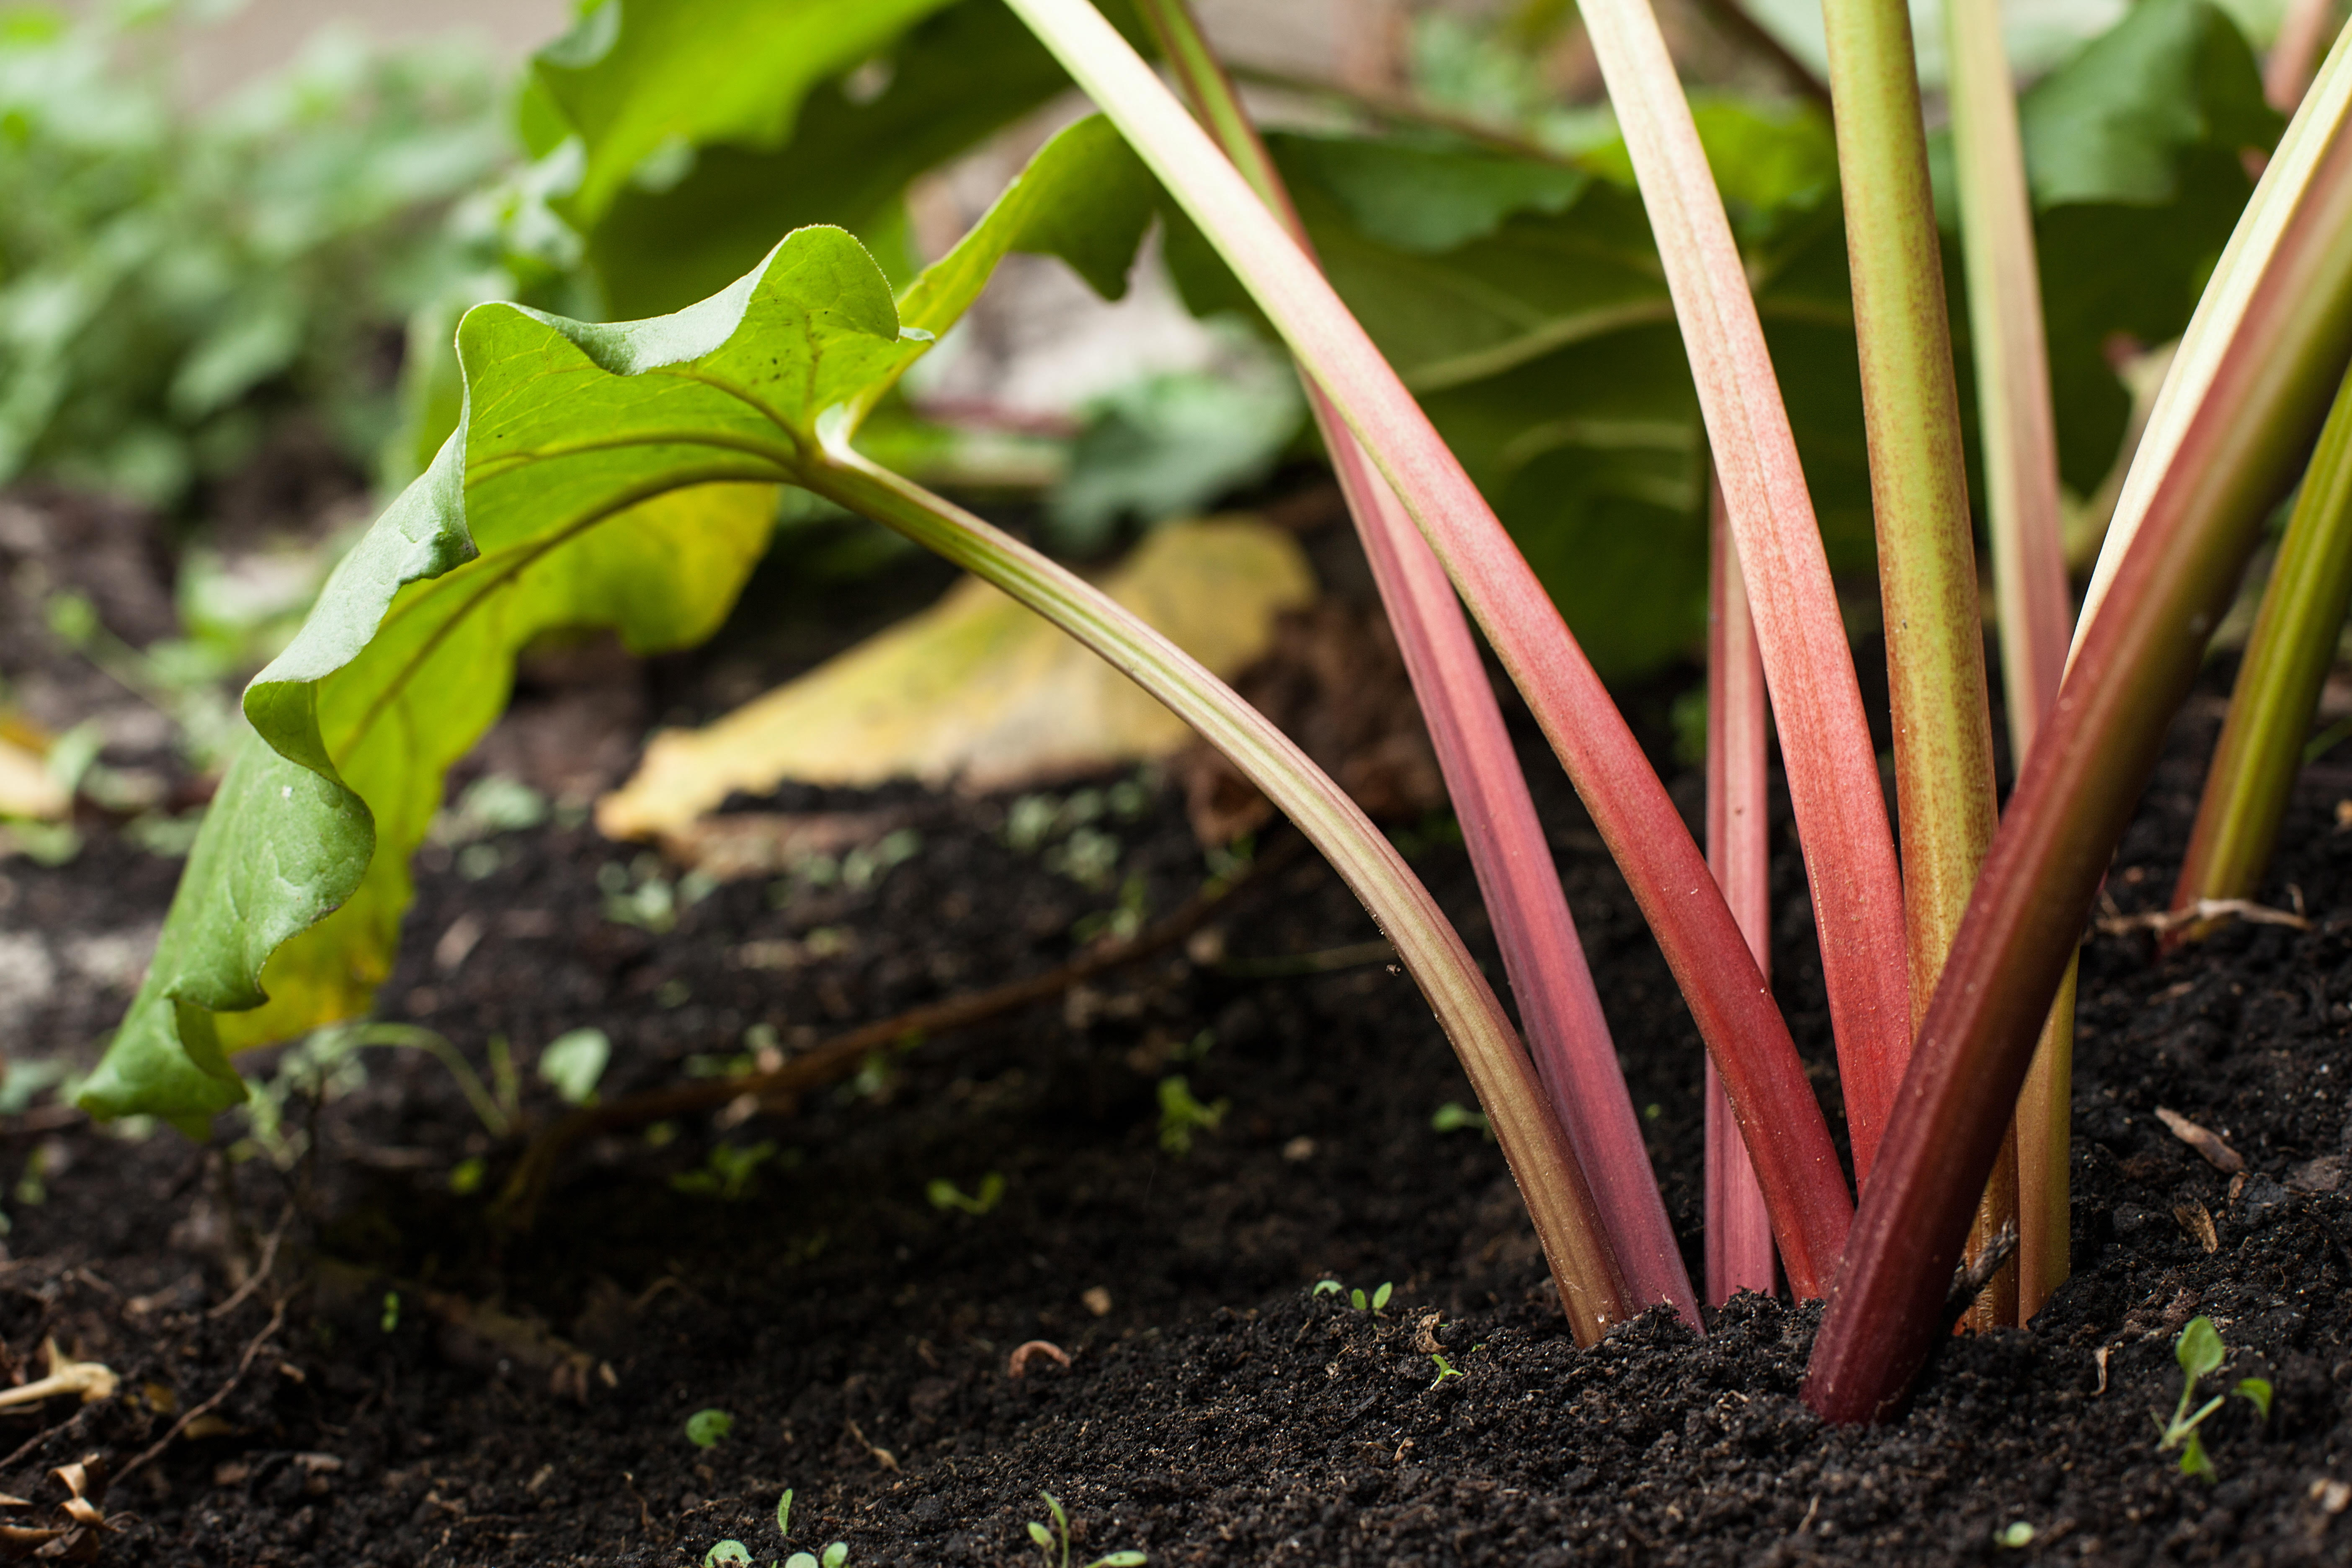 Rhubarb Benefits, Uses, and the Holy Grail of Pie